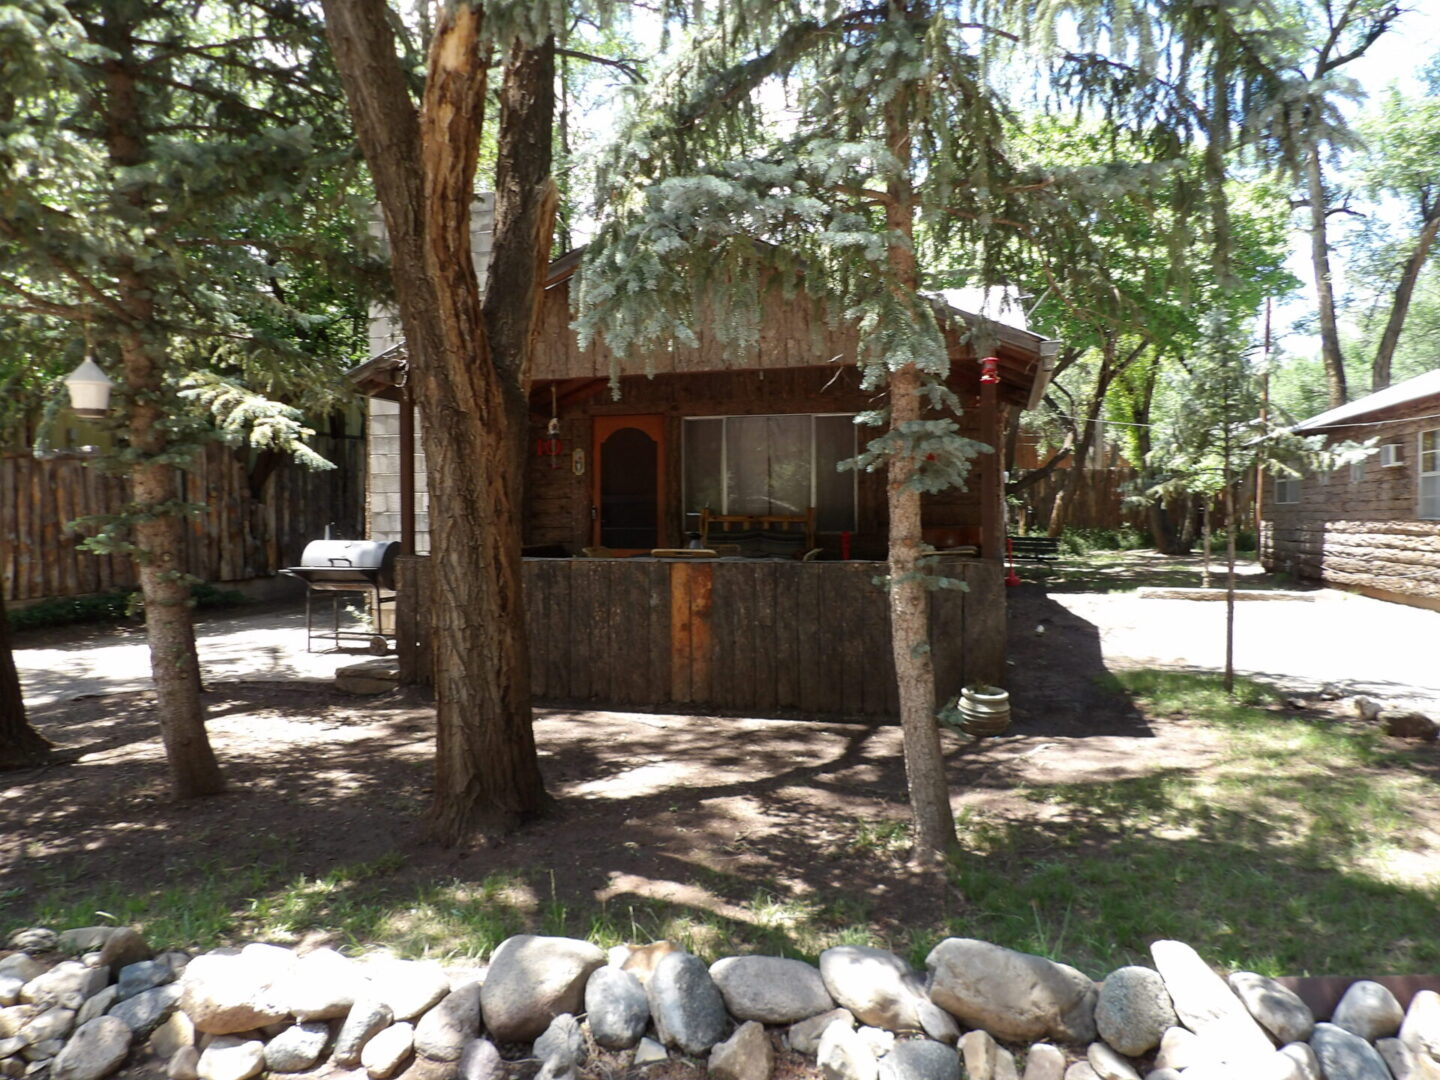 trees in front of a cabin